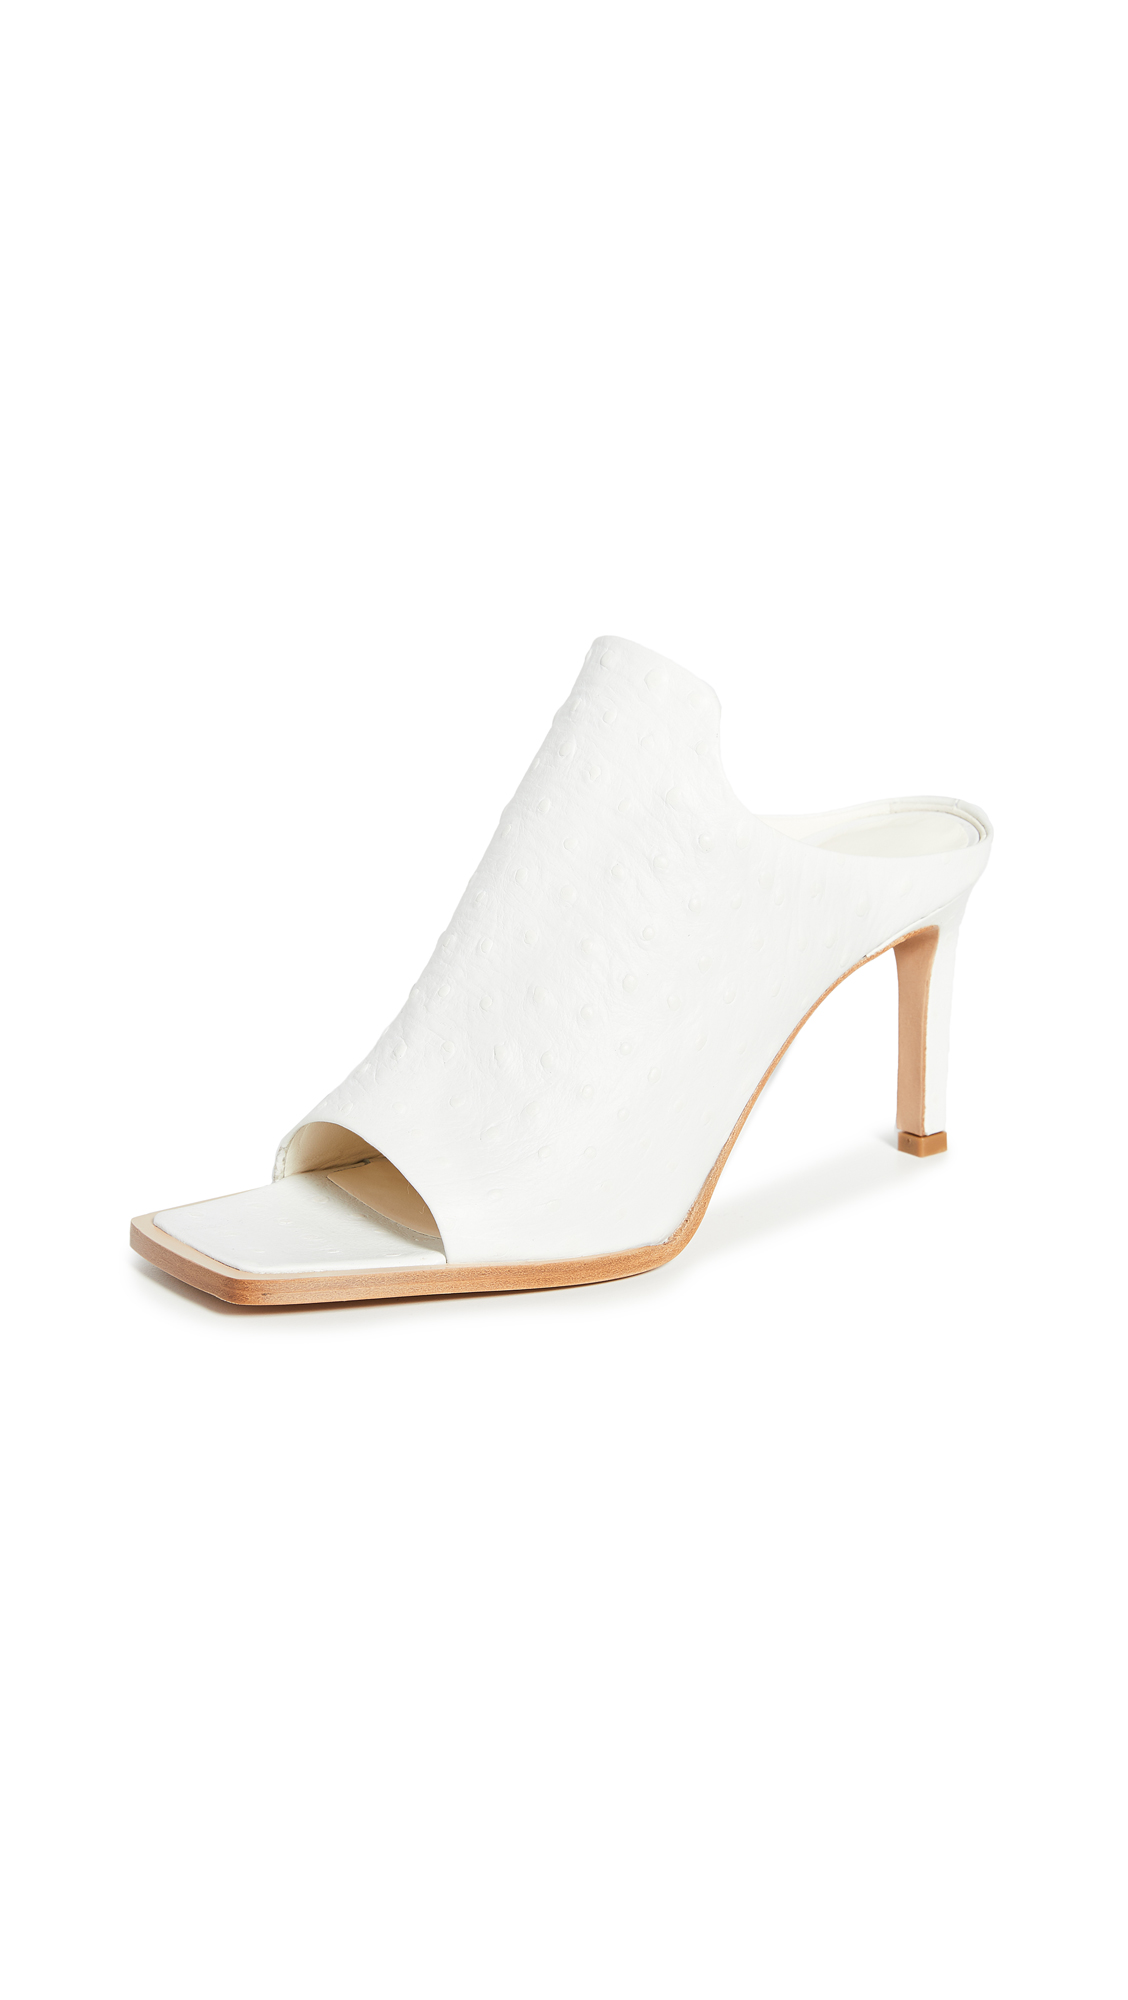 Tibi Andre Ostrich Shoes – 60% Off Sale